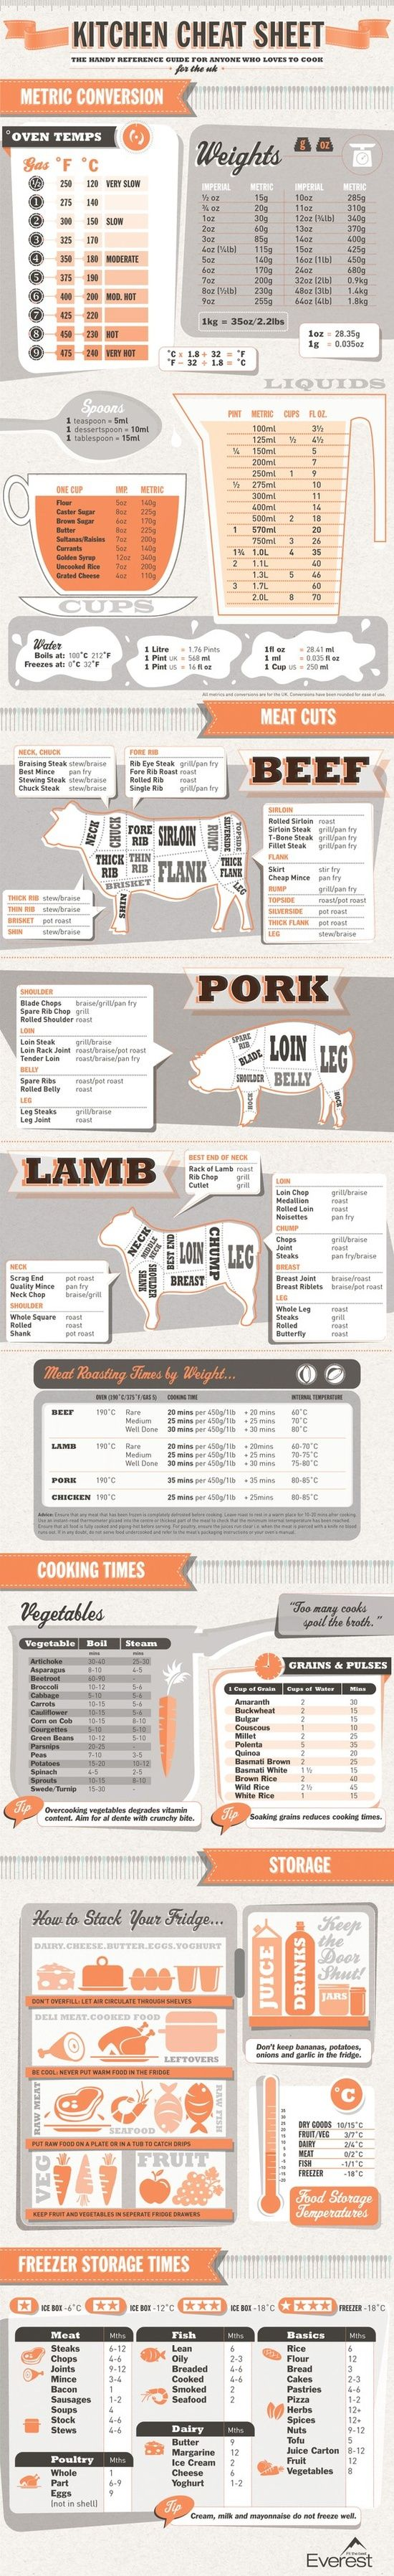 kitchen cheat sheet.